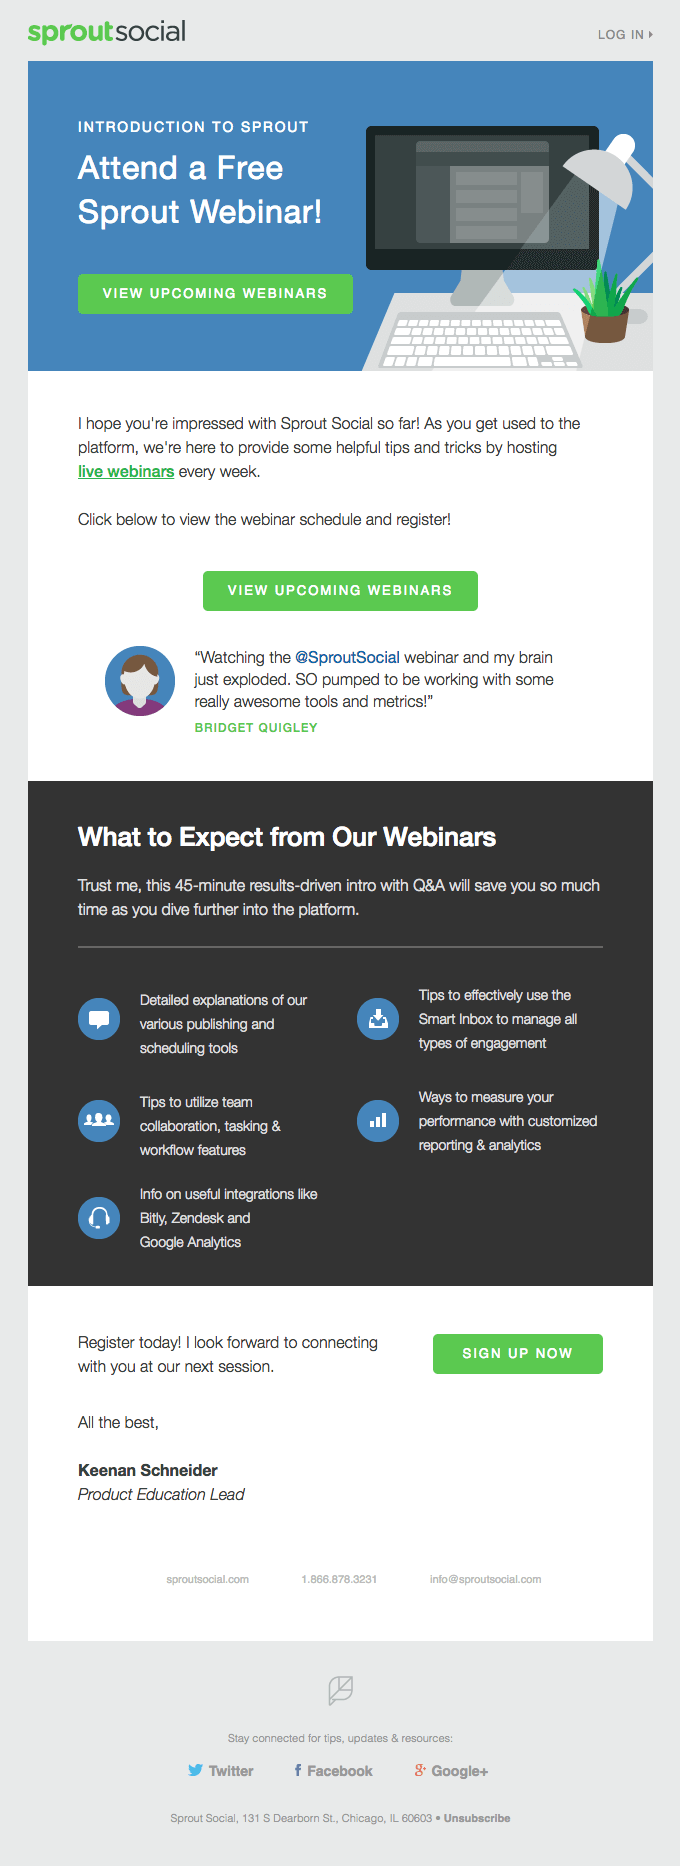 Attend a Free Sprout Webinar promotional broadcast